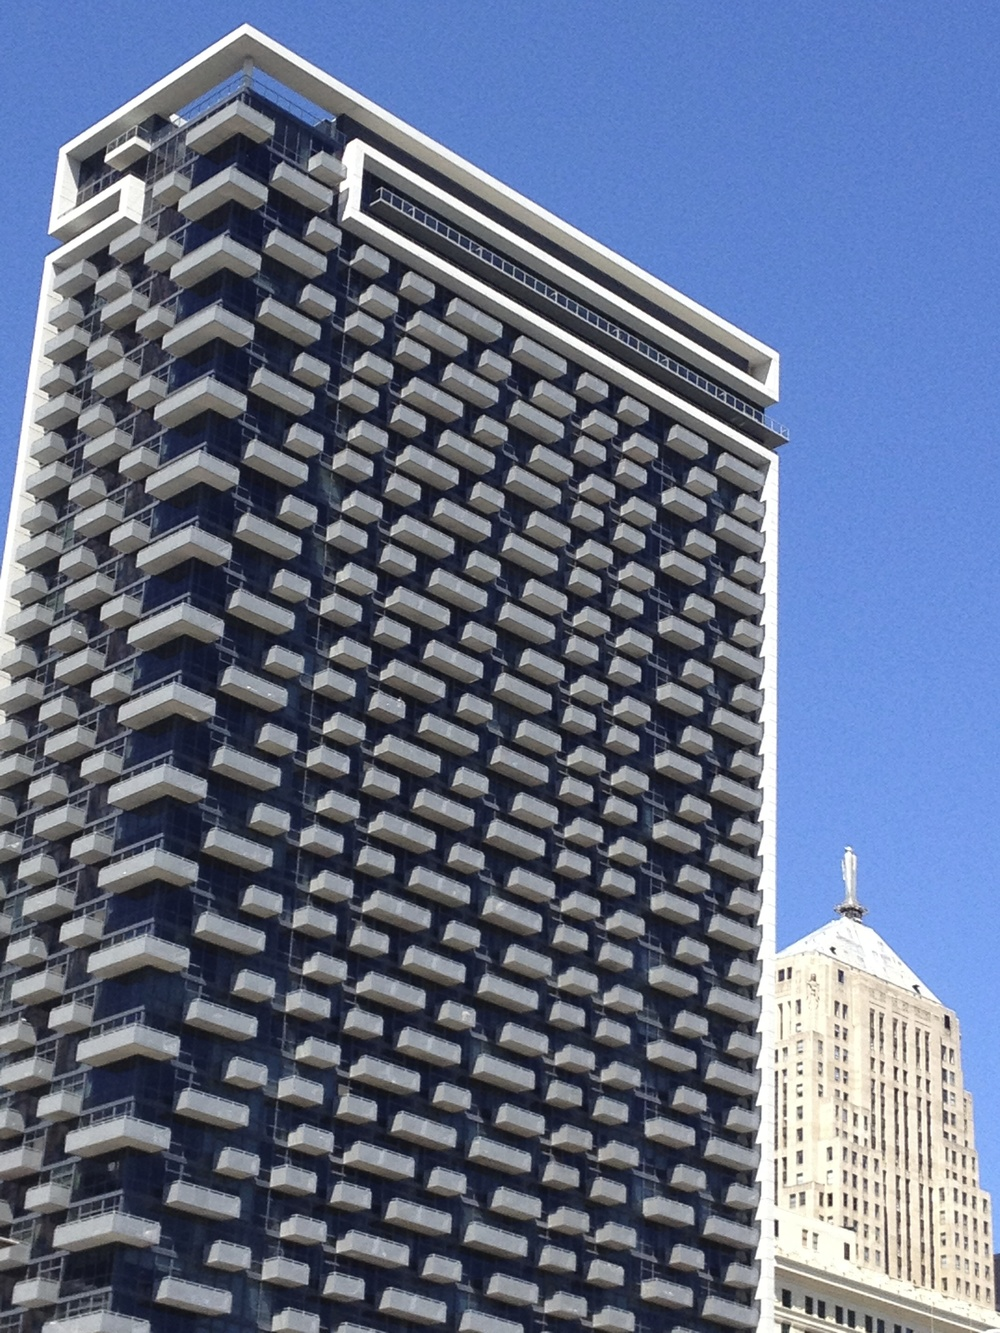 The CBD apartment building is another of Chicago's distinctive architectural gems.  In this case the pattern of different sized balconies creates a facade that is visually playful and exciting.